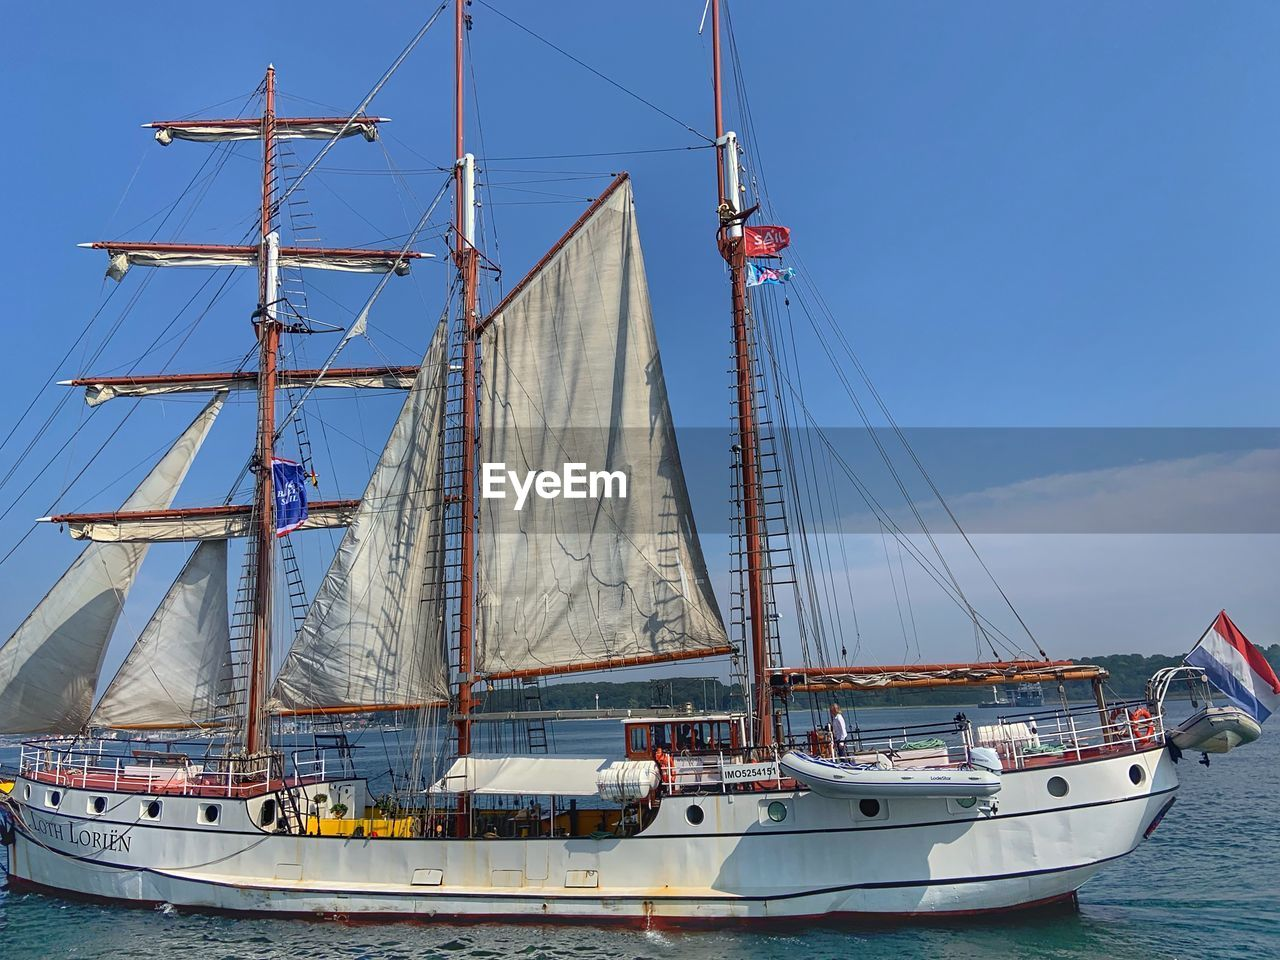 nautical vessel, mode of transportation, transportation, sailboat, water, sky, mast, pole, sea, sailing, ship, day, nature, moored, travel, sailing ship, outdoors, no people, rope, rigging, yacht